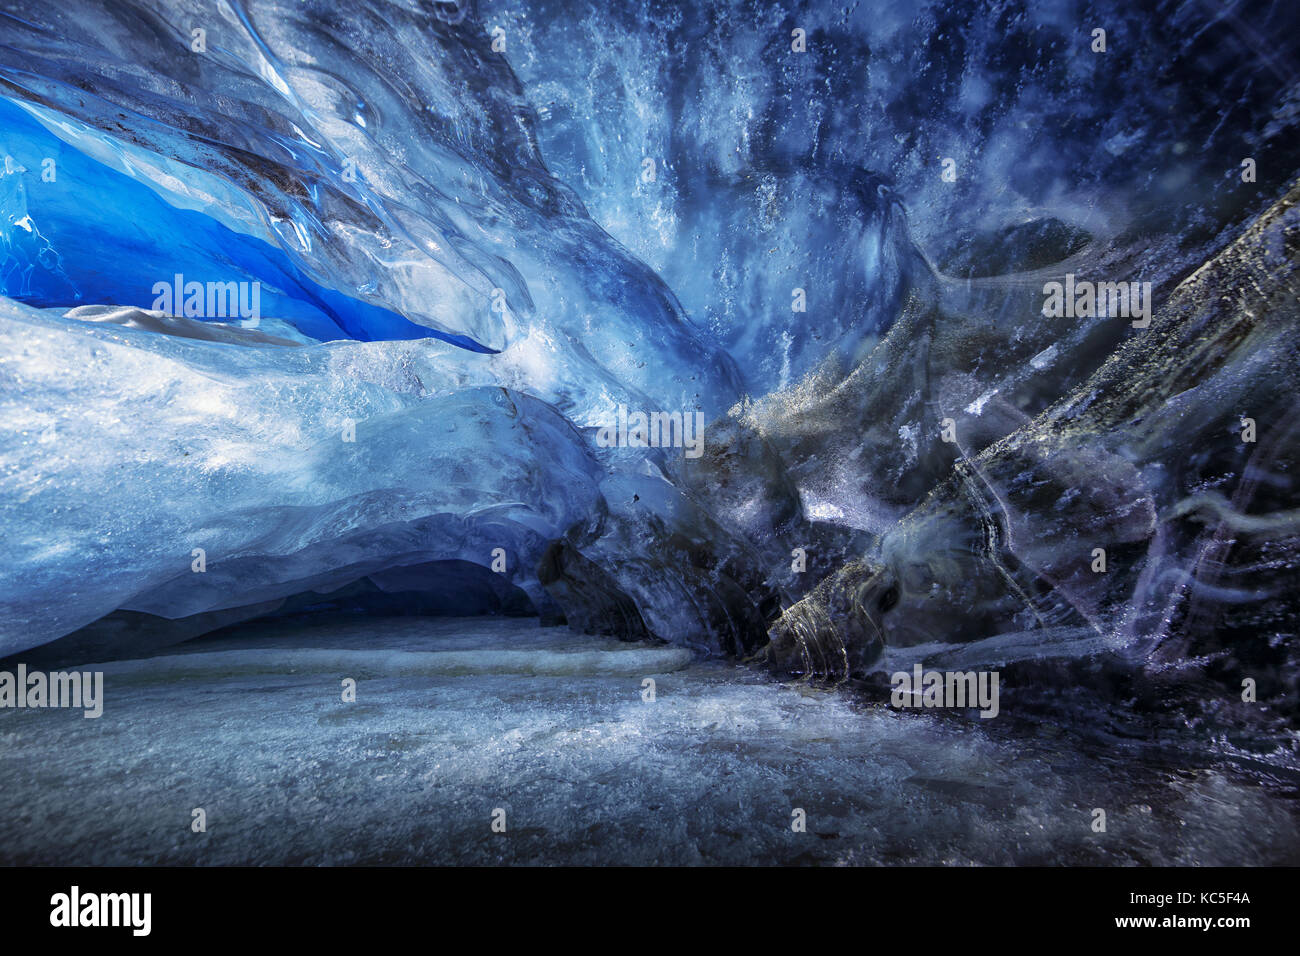 Ice shapes inside an ice cave during a photography expedition in Athabasca Glacier - Stock Image